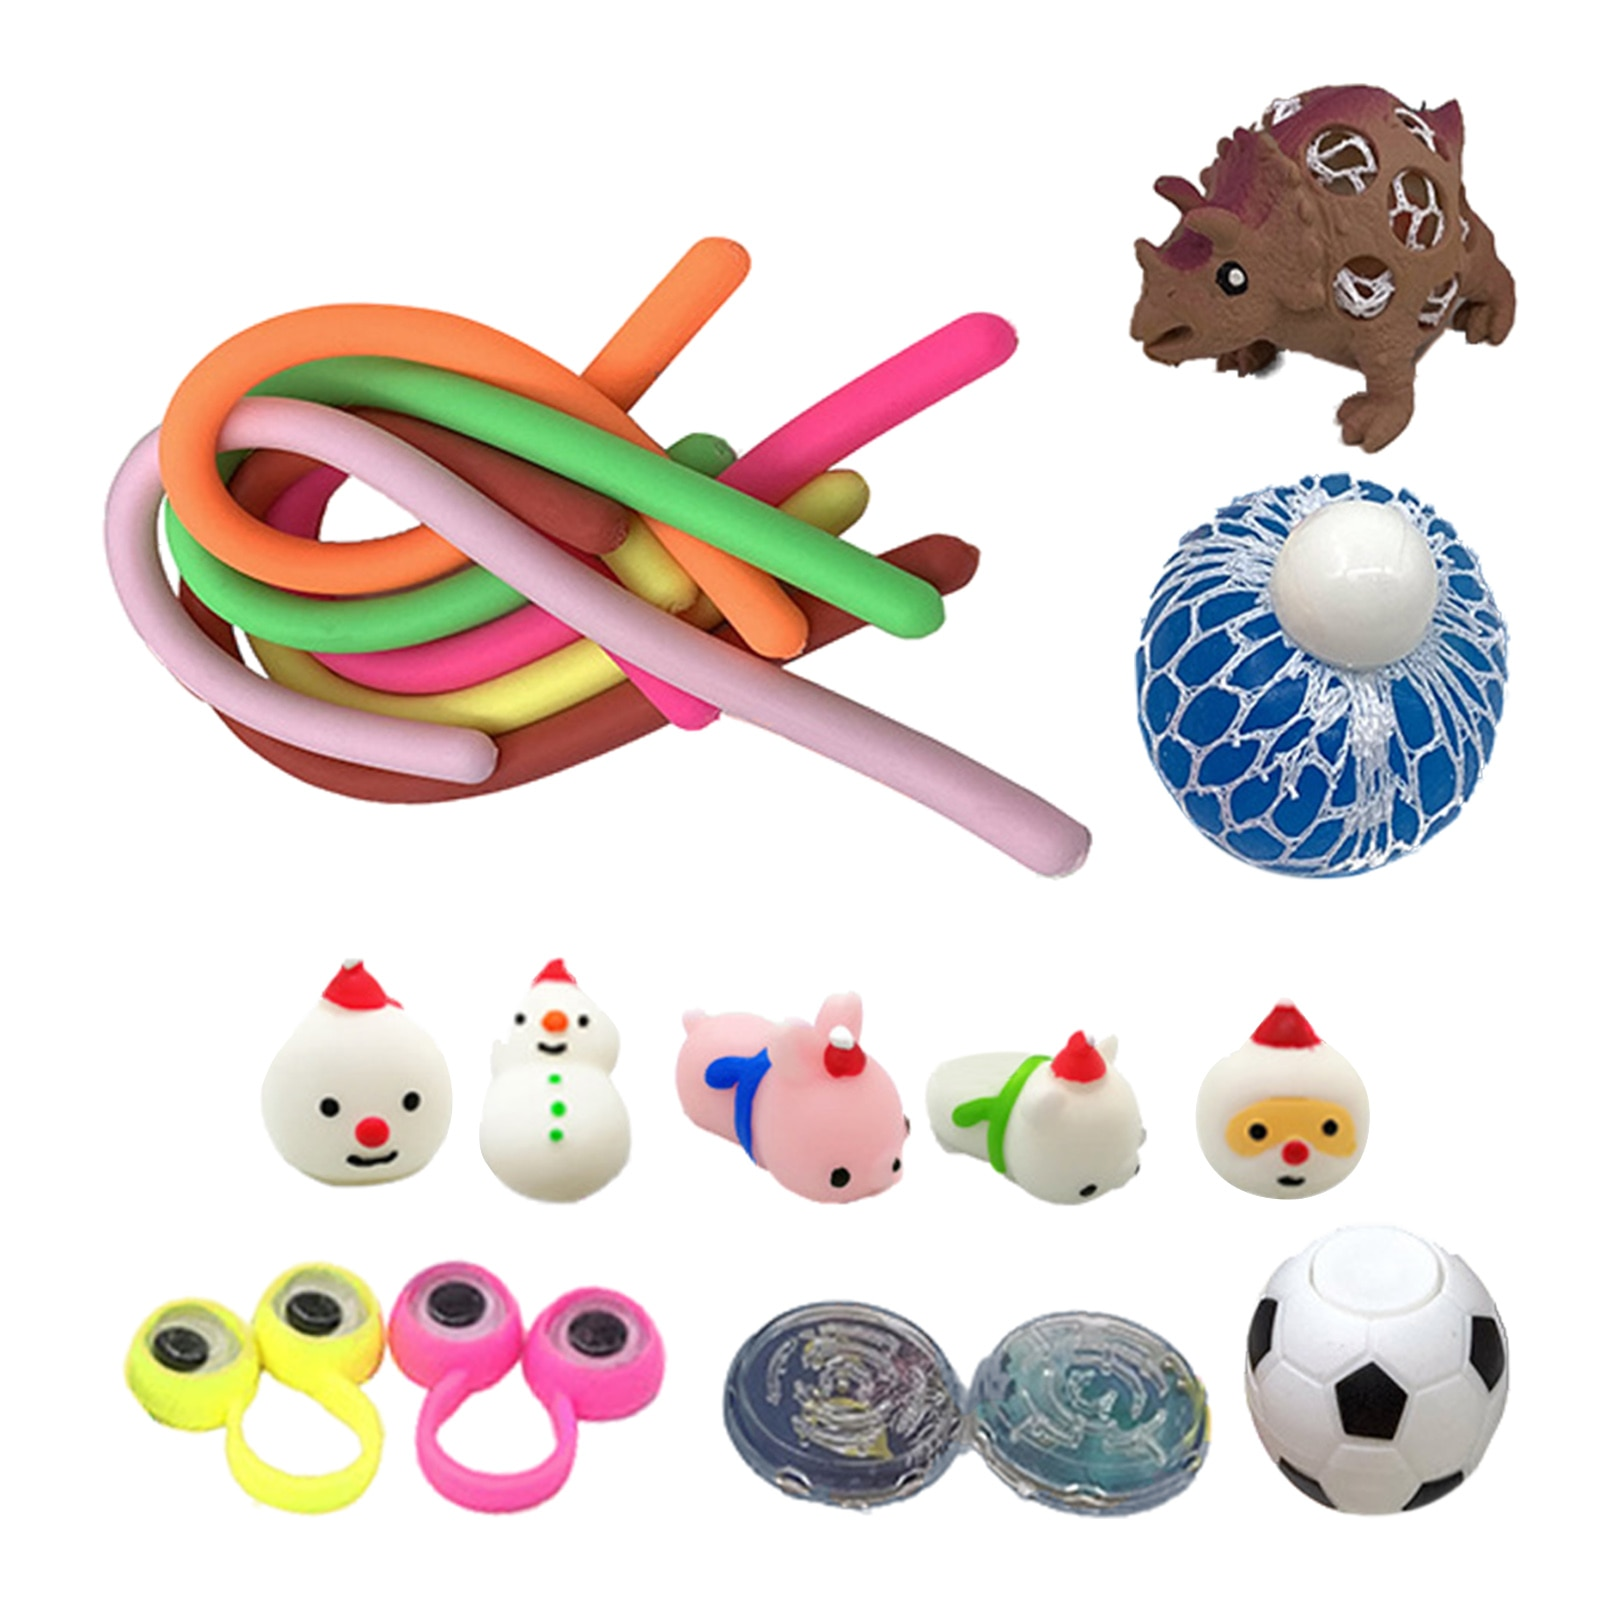 Sensory Fidget Toy Set Stress Relief Toys Bundle For Teens Adults Novel And Lovely Animal Design For Children Over 7 Years Old enlarge